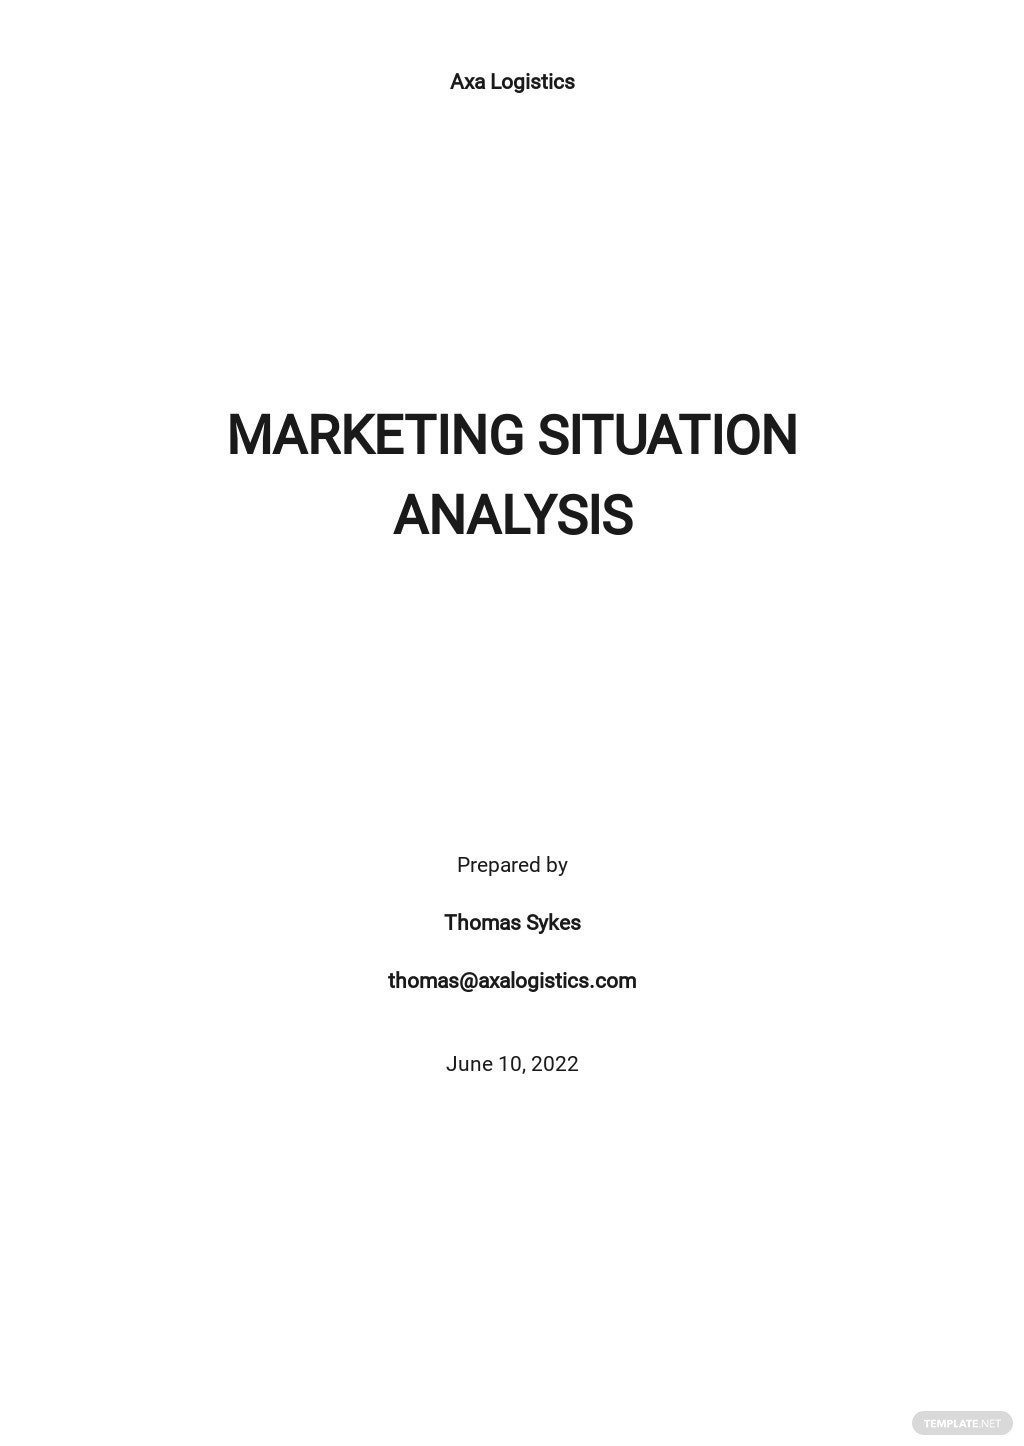 Sample Marketing Situation Analysis Template